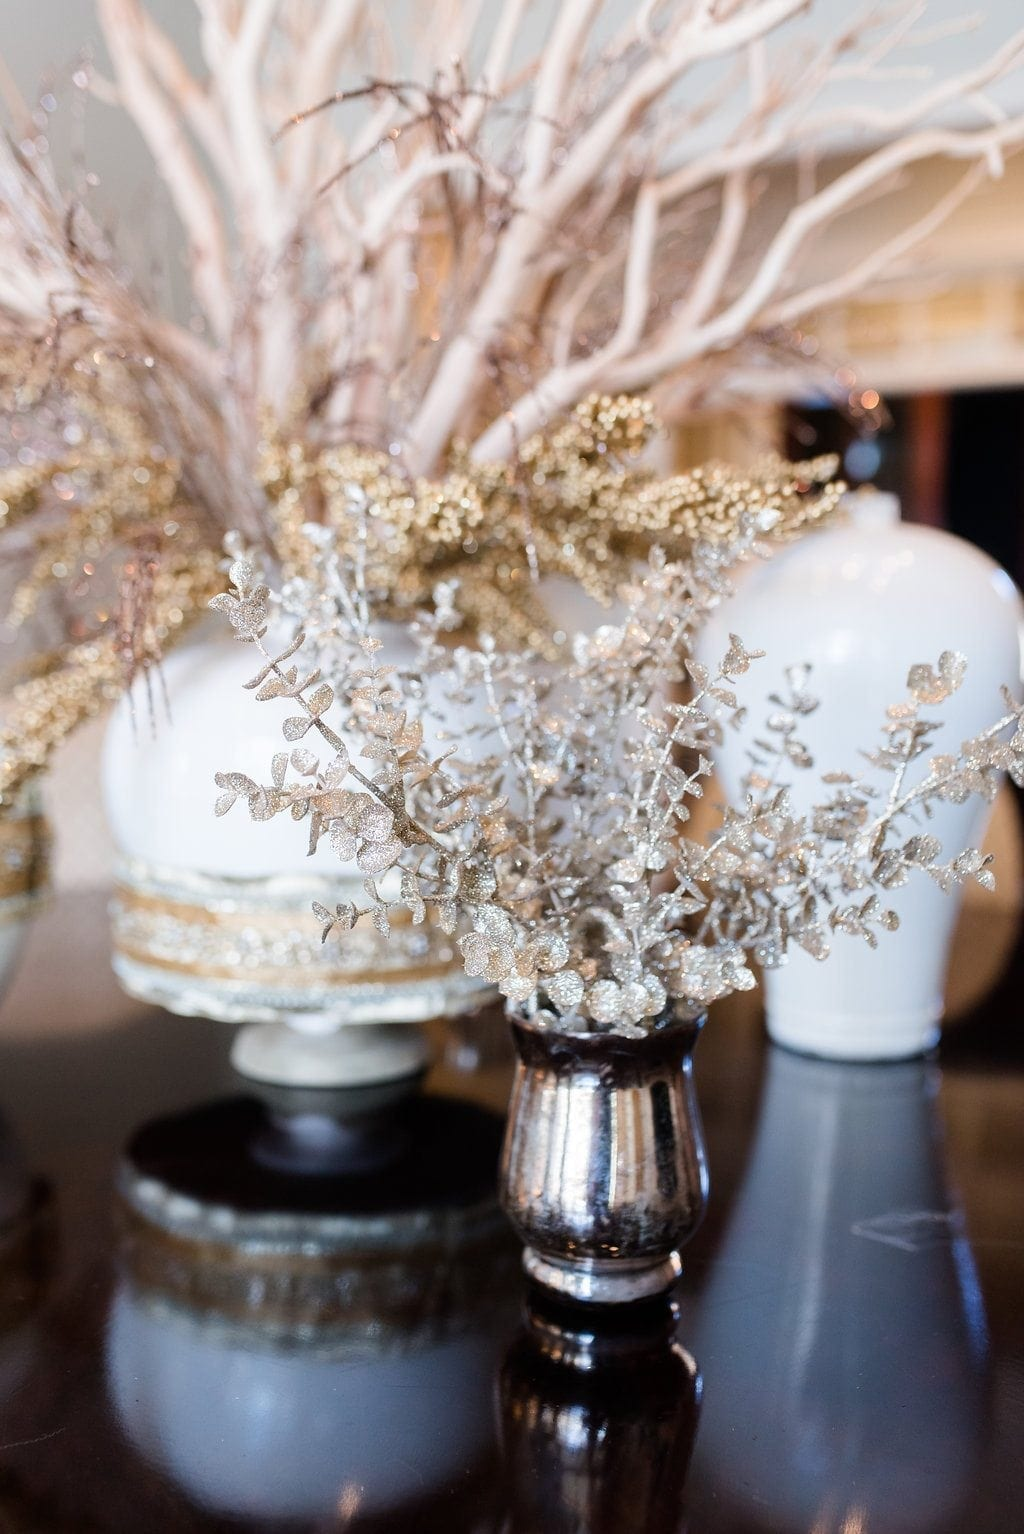 White and gold decorations for a dining room. Dining room decor ideas for tables.